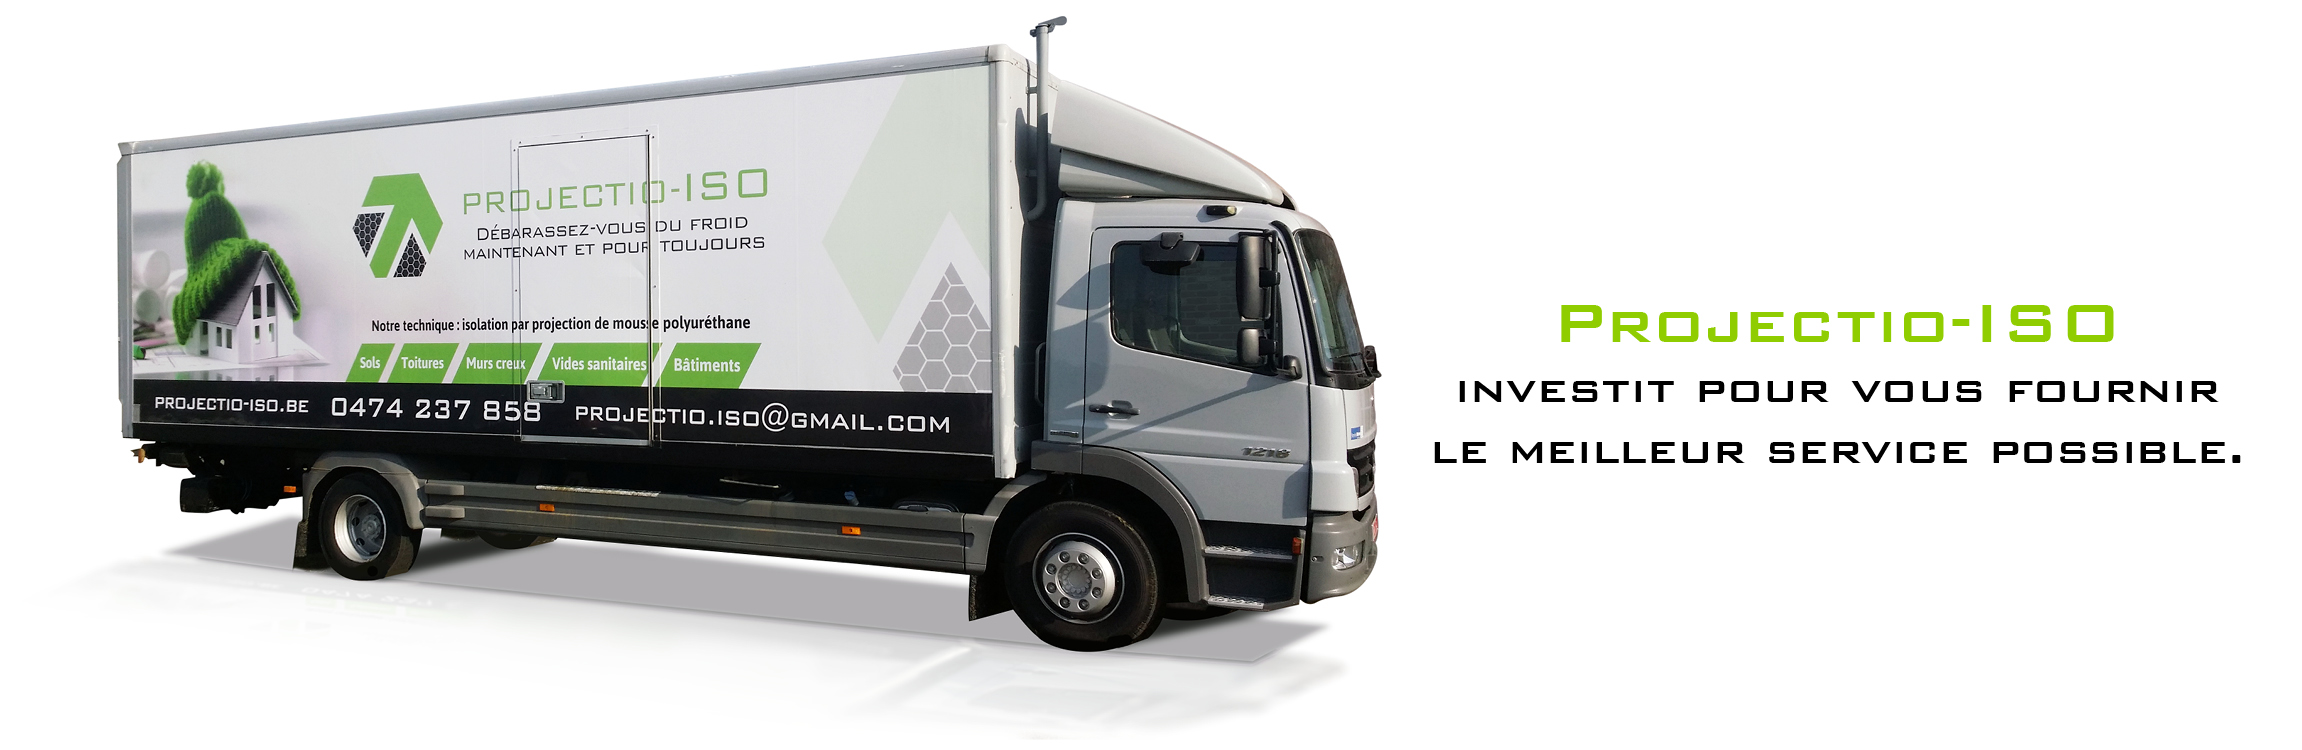 Camion Projectio ISO